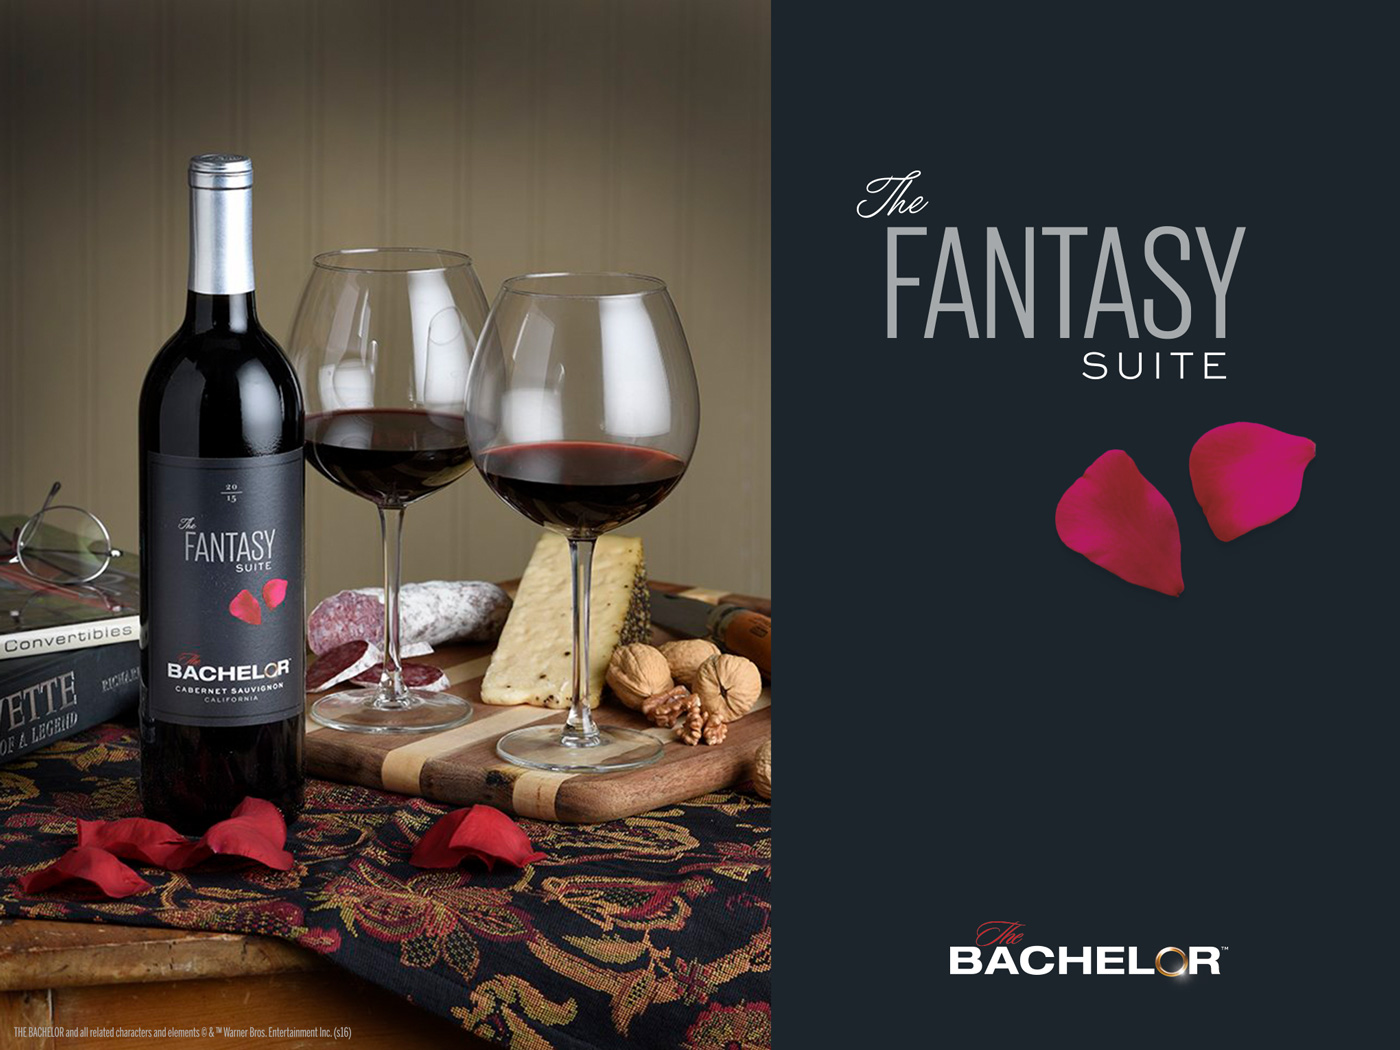 Bachelor Wines - The Fantasy Suite Lifestyle